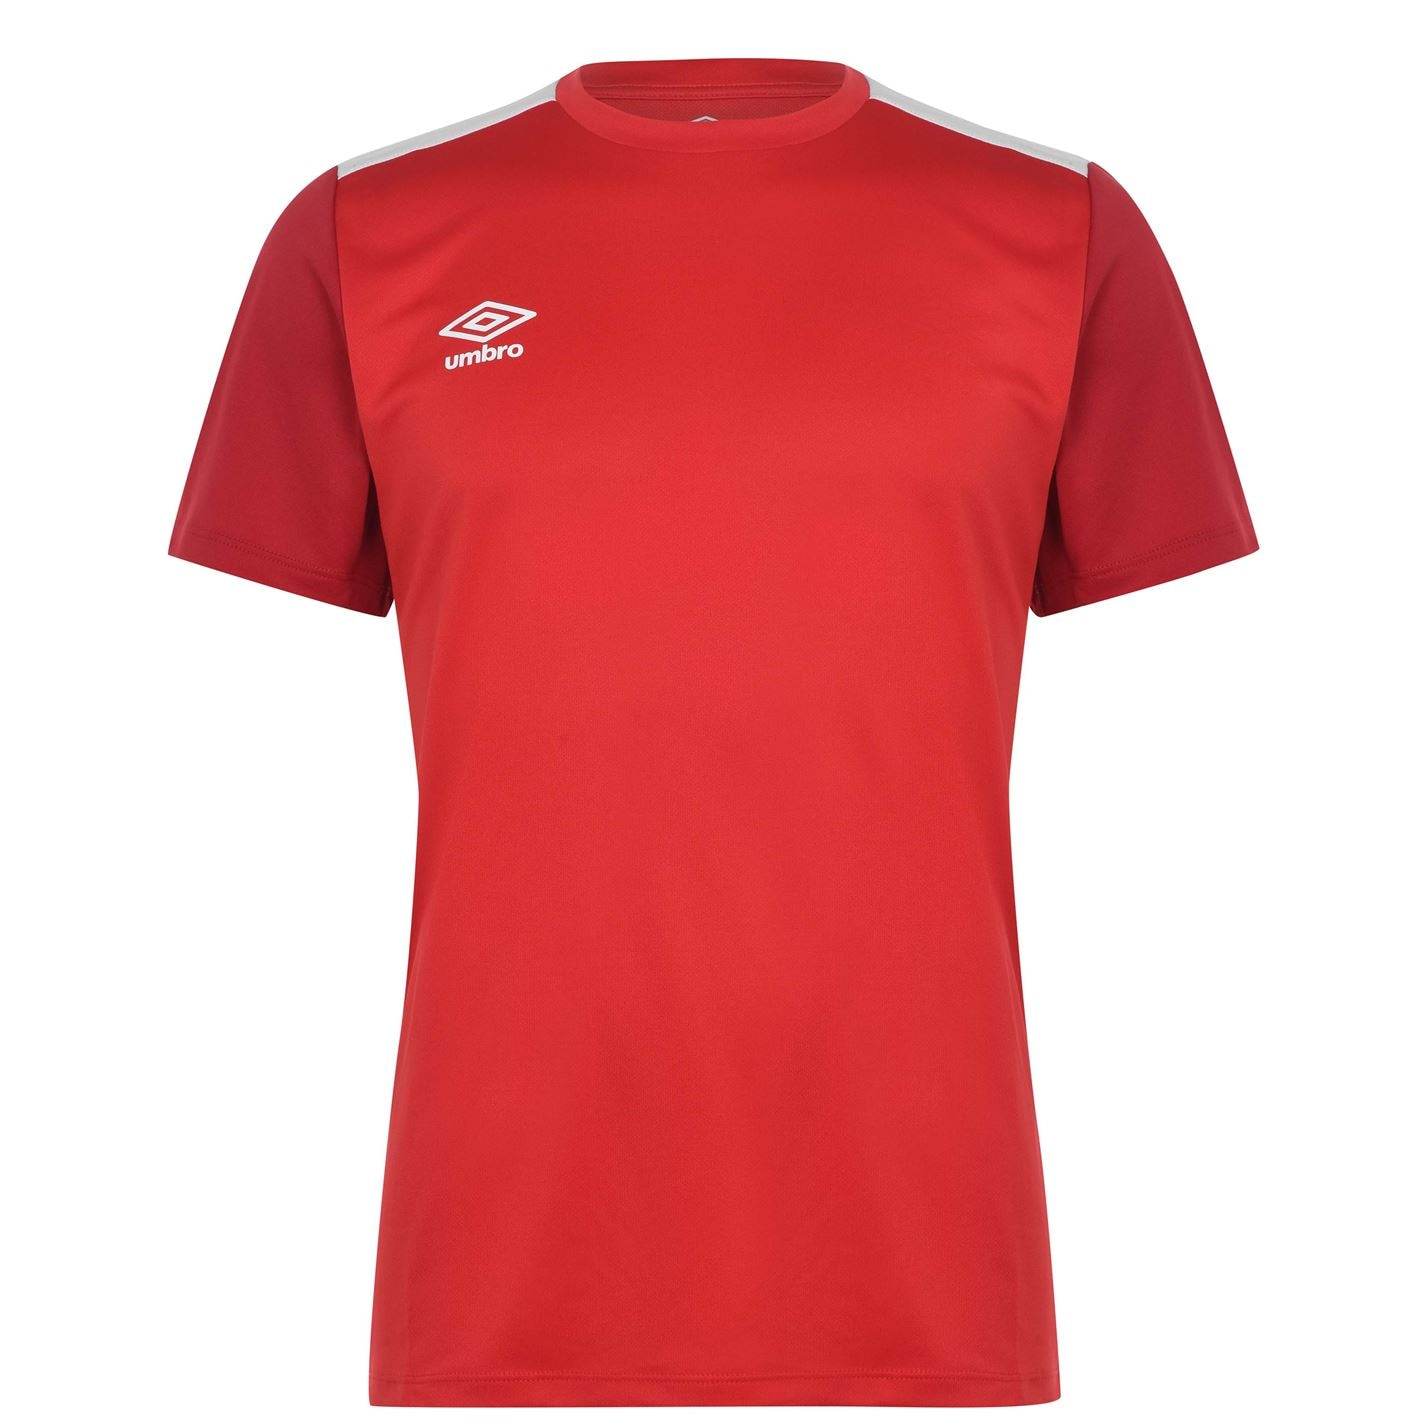 Umbro Training Jersey Mens Red